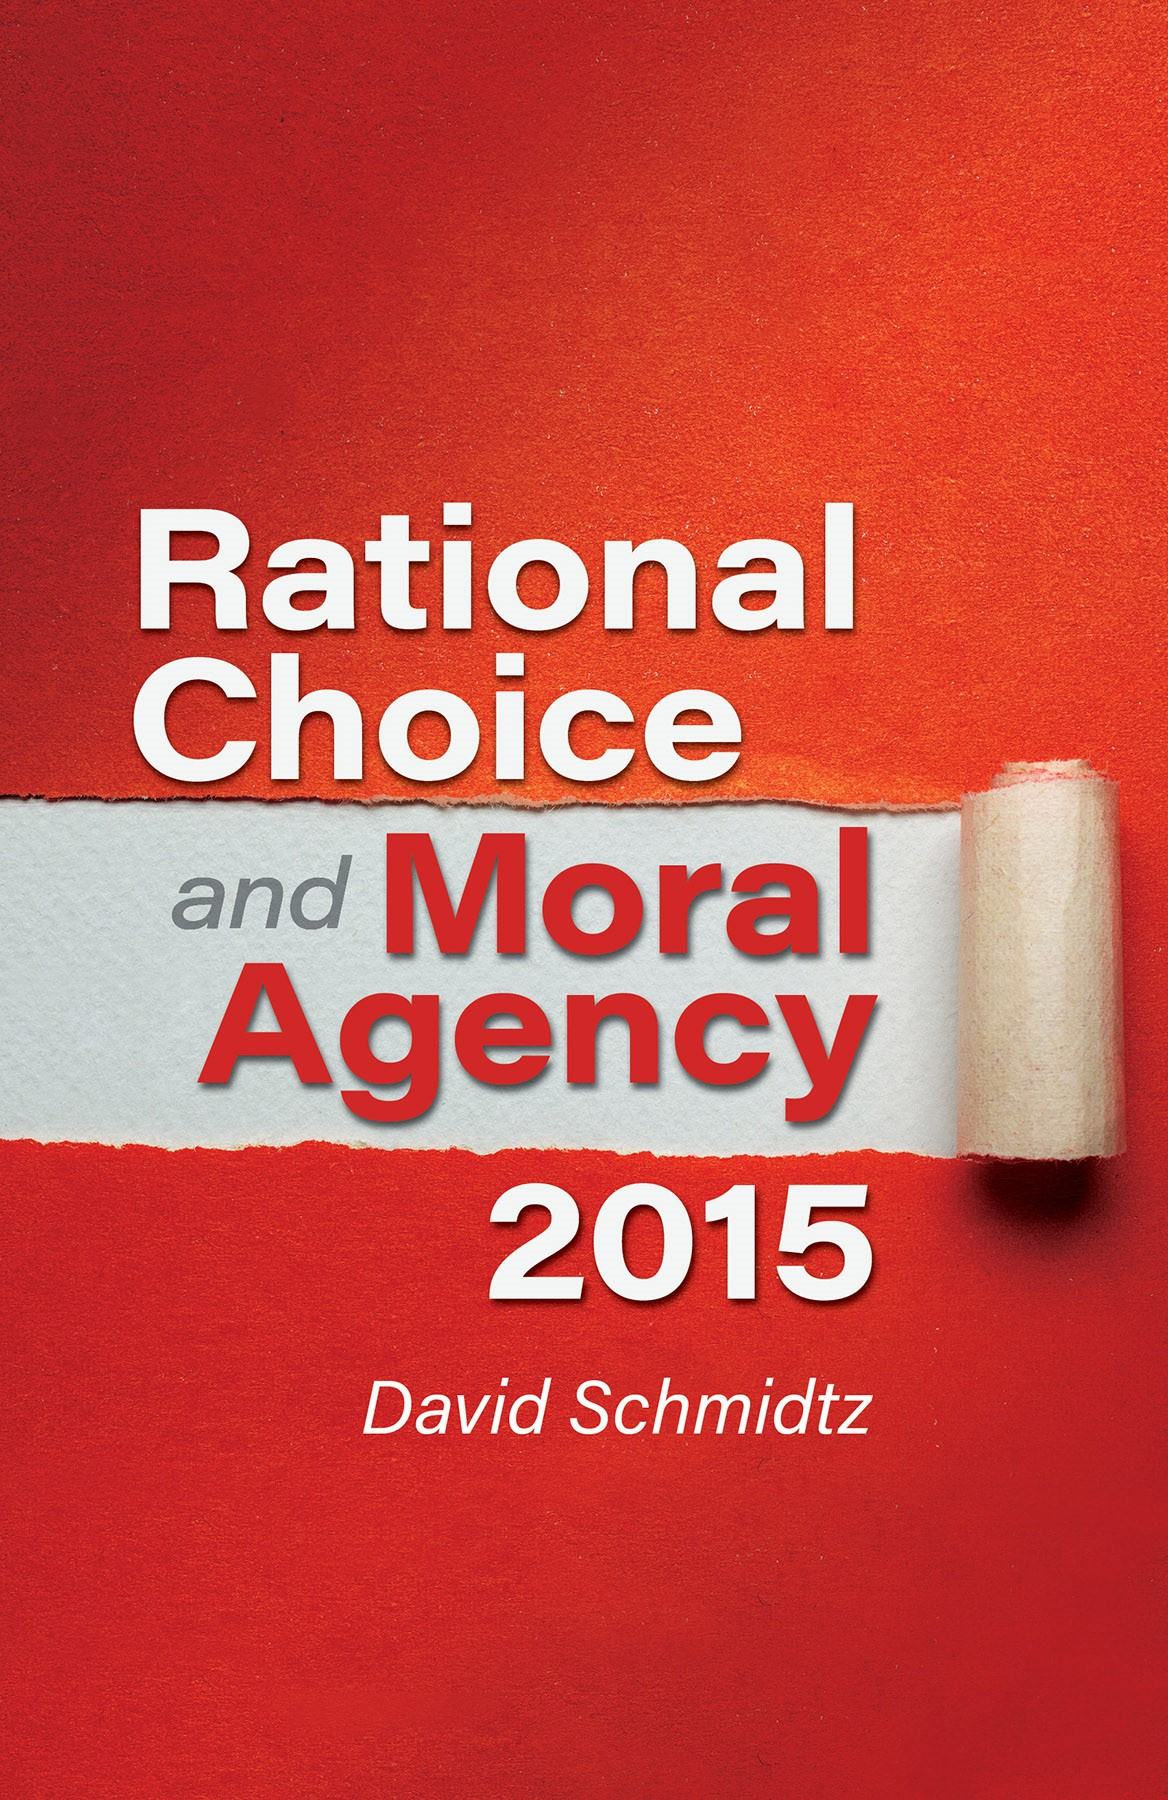 Rational Choice and Moral Agency: 2015